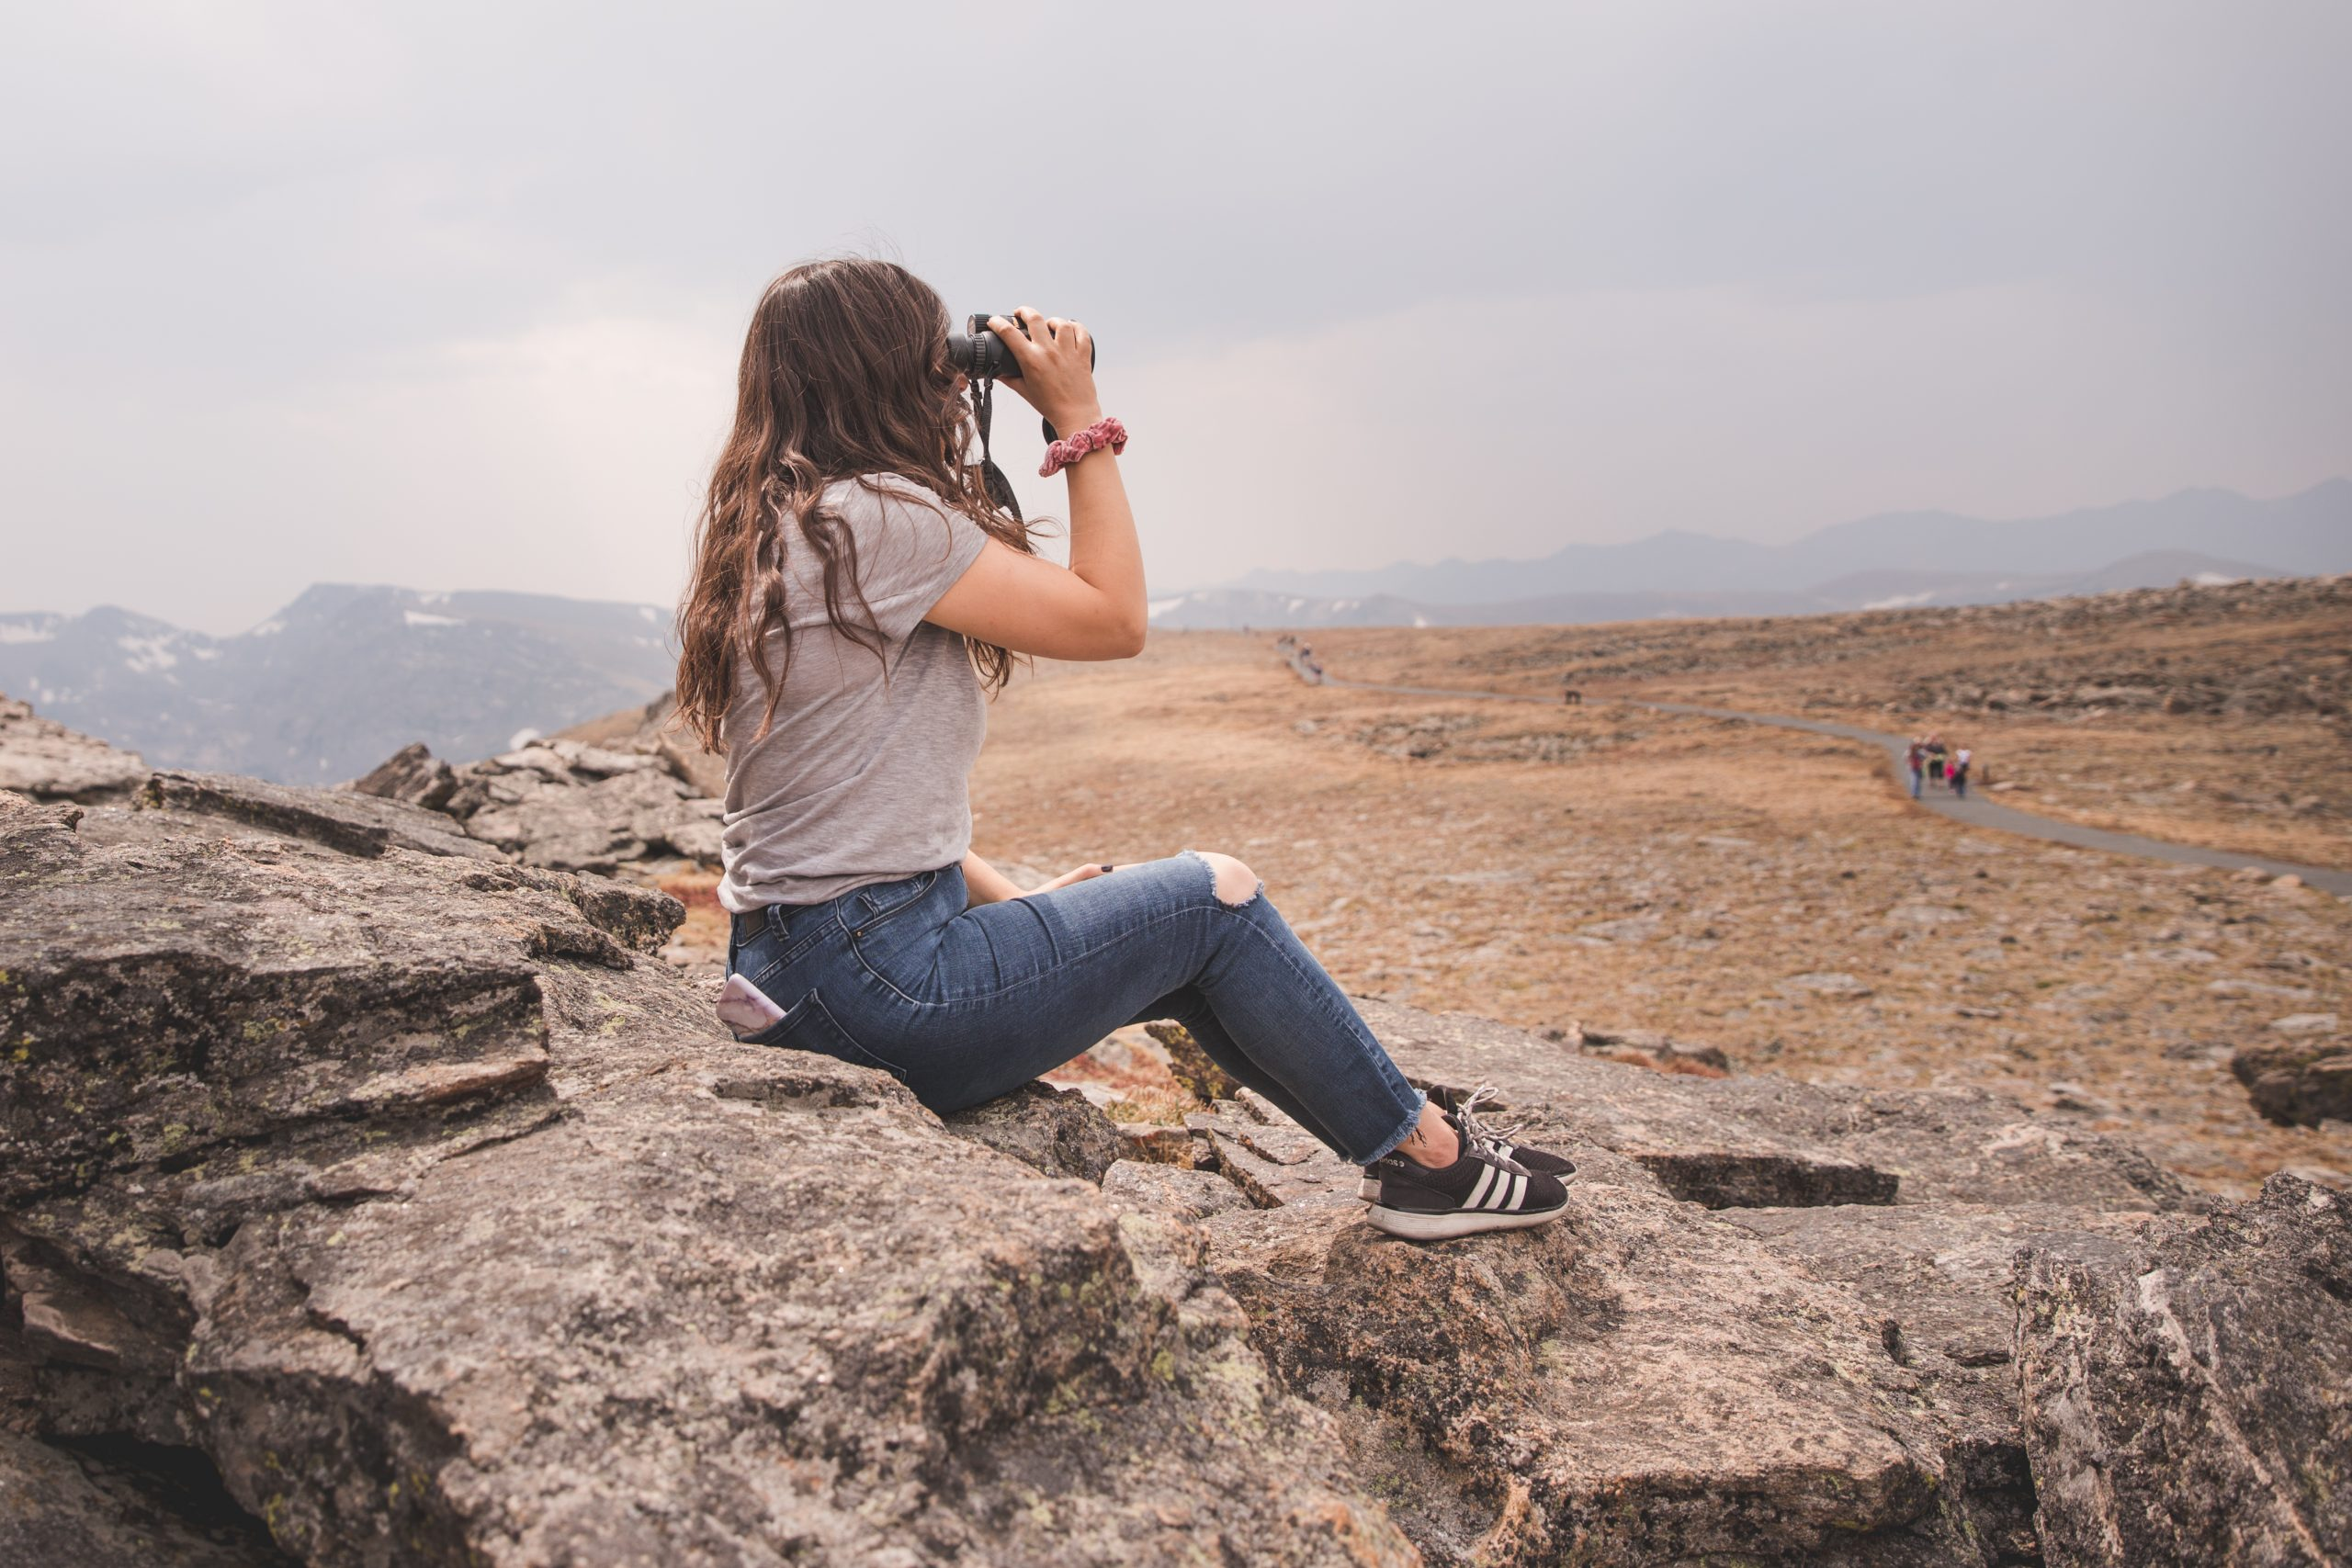 Kelsey looking for animals with binoculars at Rocky Mountain National Park in Colorado. Kelsey is sitting on a rock and holding the binoculars up to her eyes, and is surrounded by tundra habitat containing rocky terrain and short golden grass.